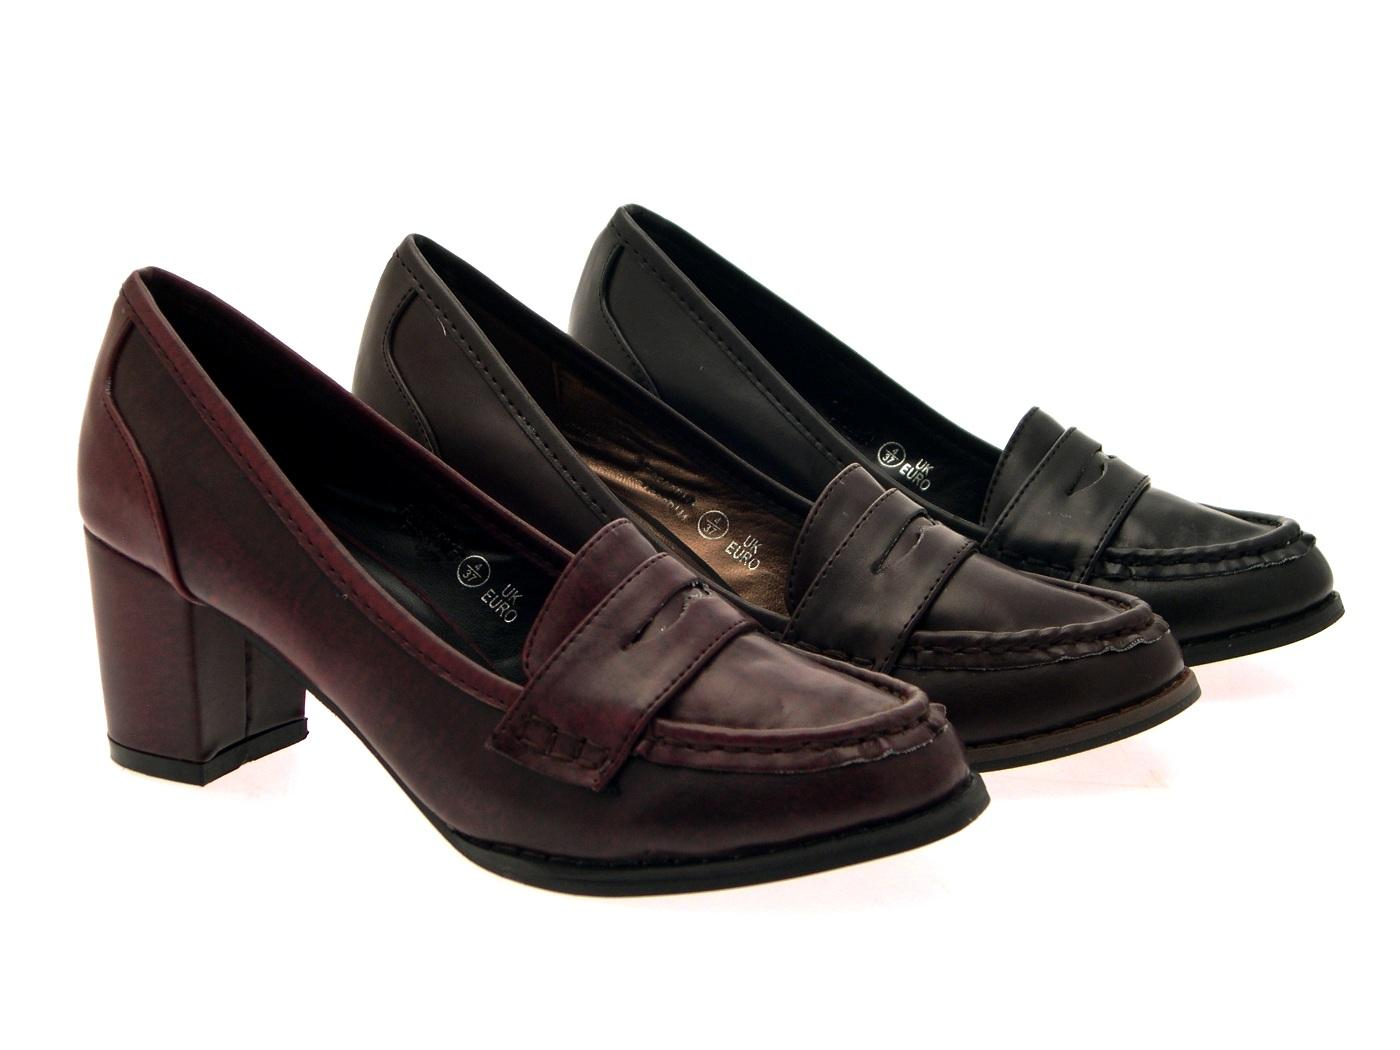 Loafers always add an extra dash of dapper to woman's look. Featuring loafers, penny loafers, boat shoe and oxfords style shoes, makeshop-mdrcky9h.ga has the top notch collection of women's loafers.